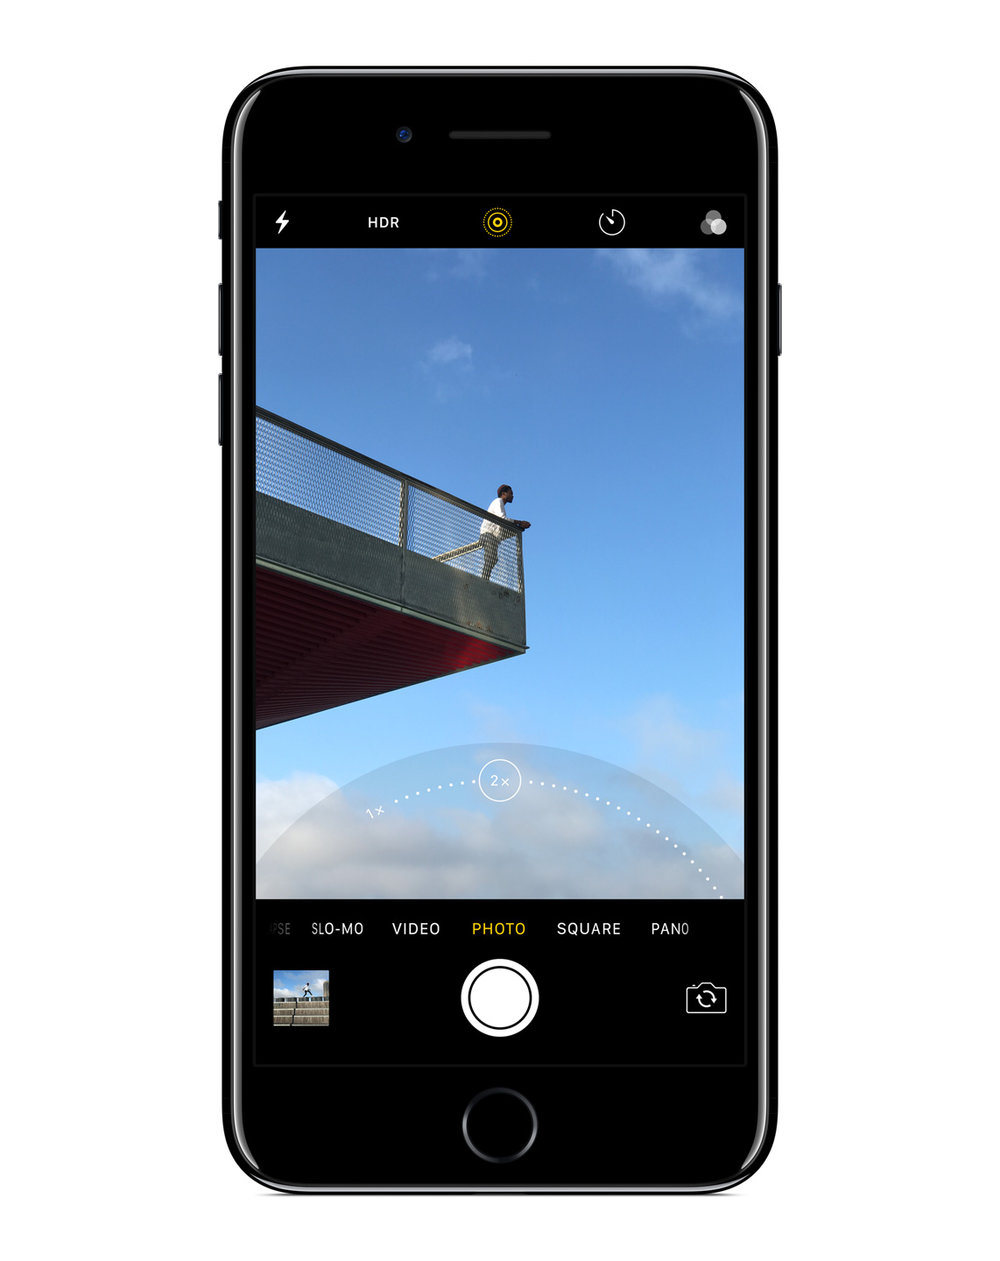 The iPhone 7 Plus' second lens will be used as a 2X optical zoom in the camera app. Since the older camera feels like a 28mm, the new one should be around 50mm.